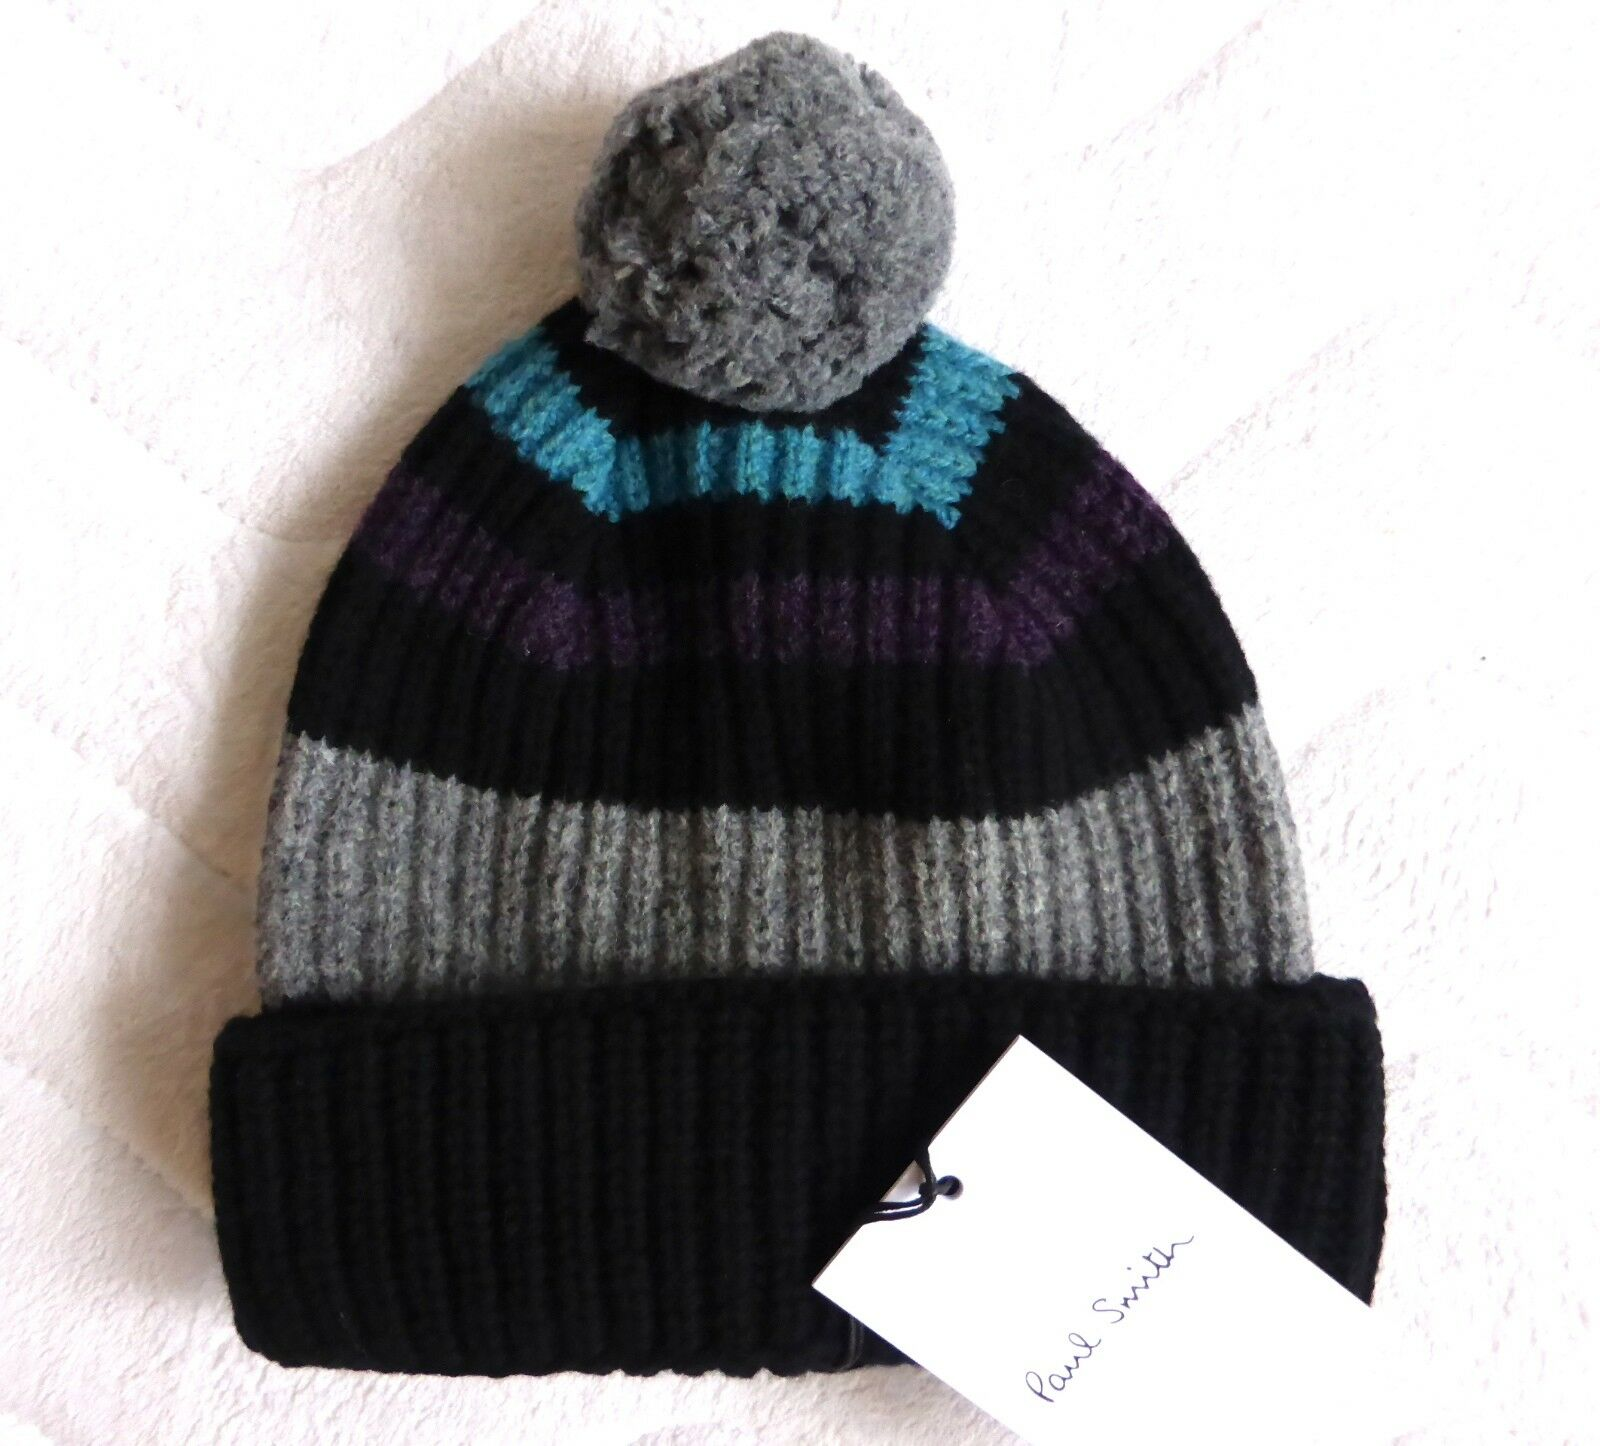 Autentico Paul Smith Nero Grigio Lana Bobble Cappello Beanie del mouominito PON PON fatto Scotle